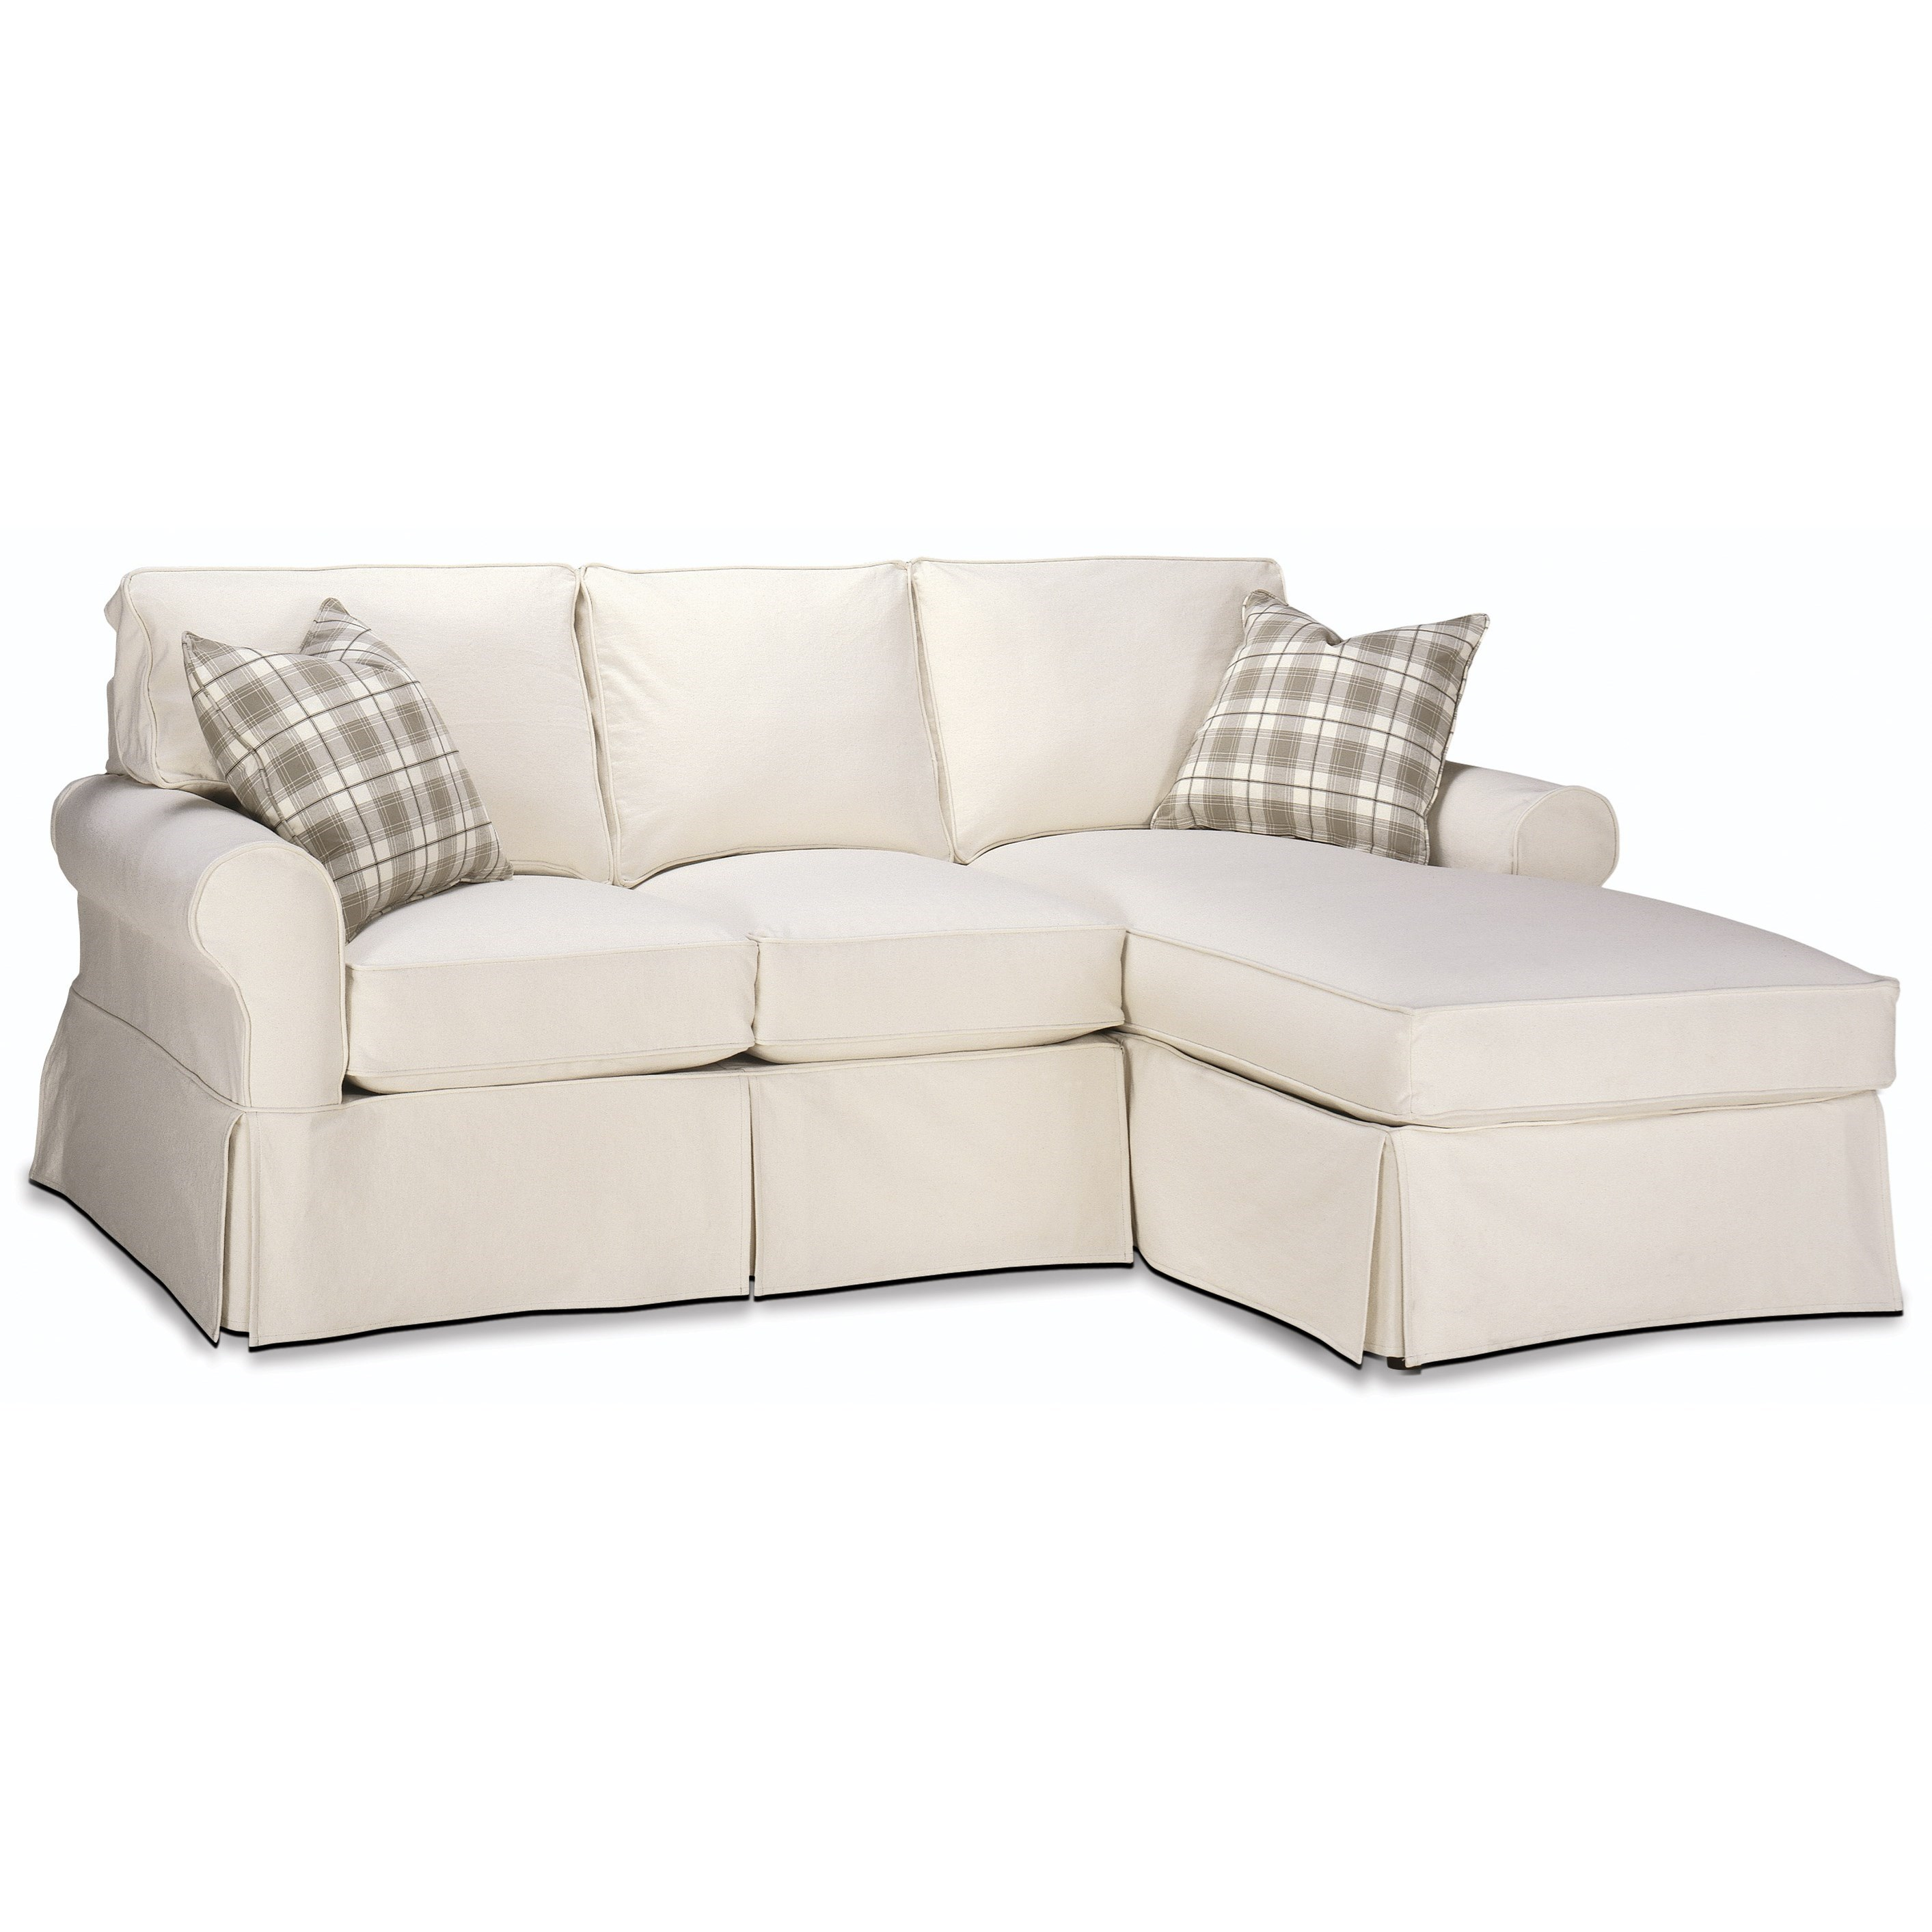 Rowe Masquerade Casual Style Sectional Sofa Baer S